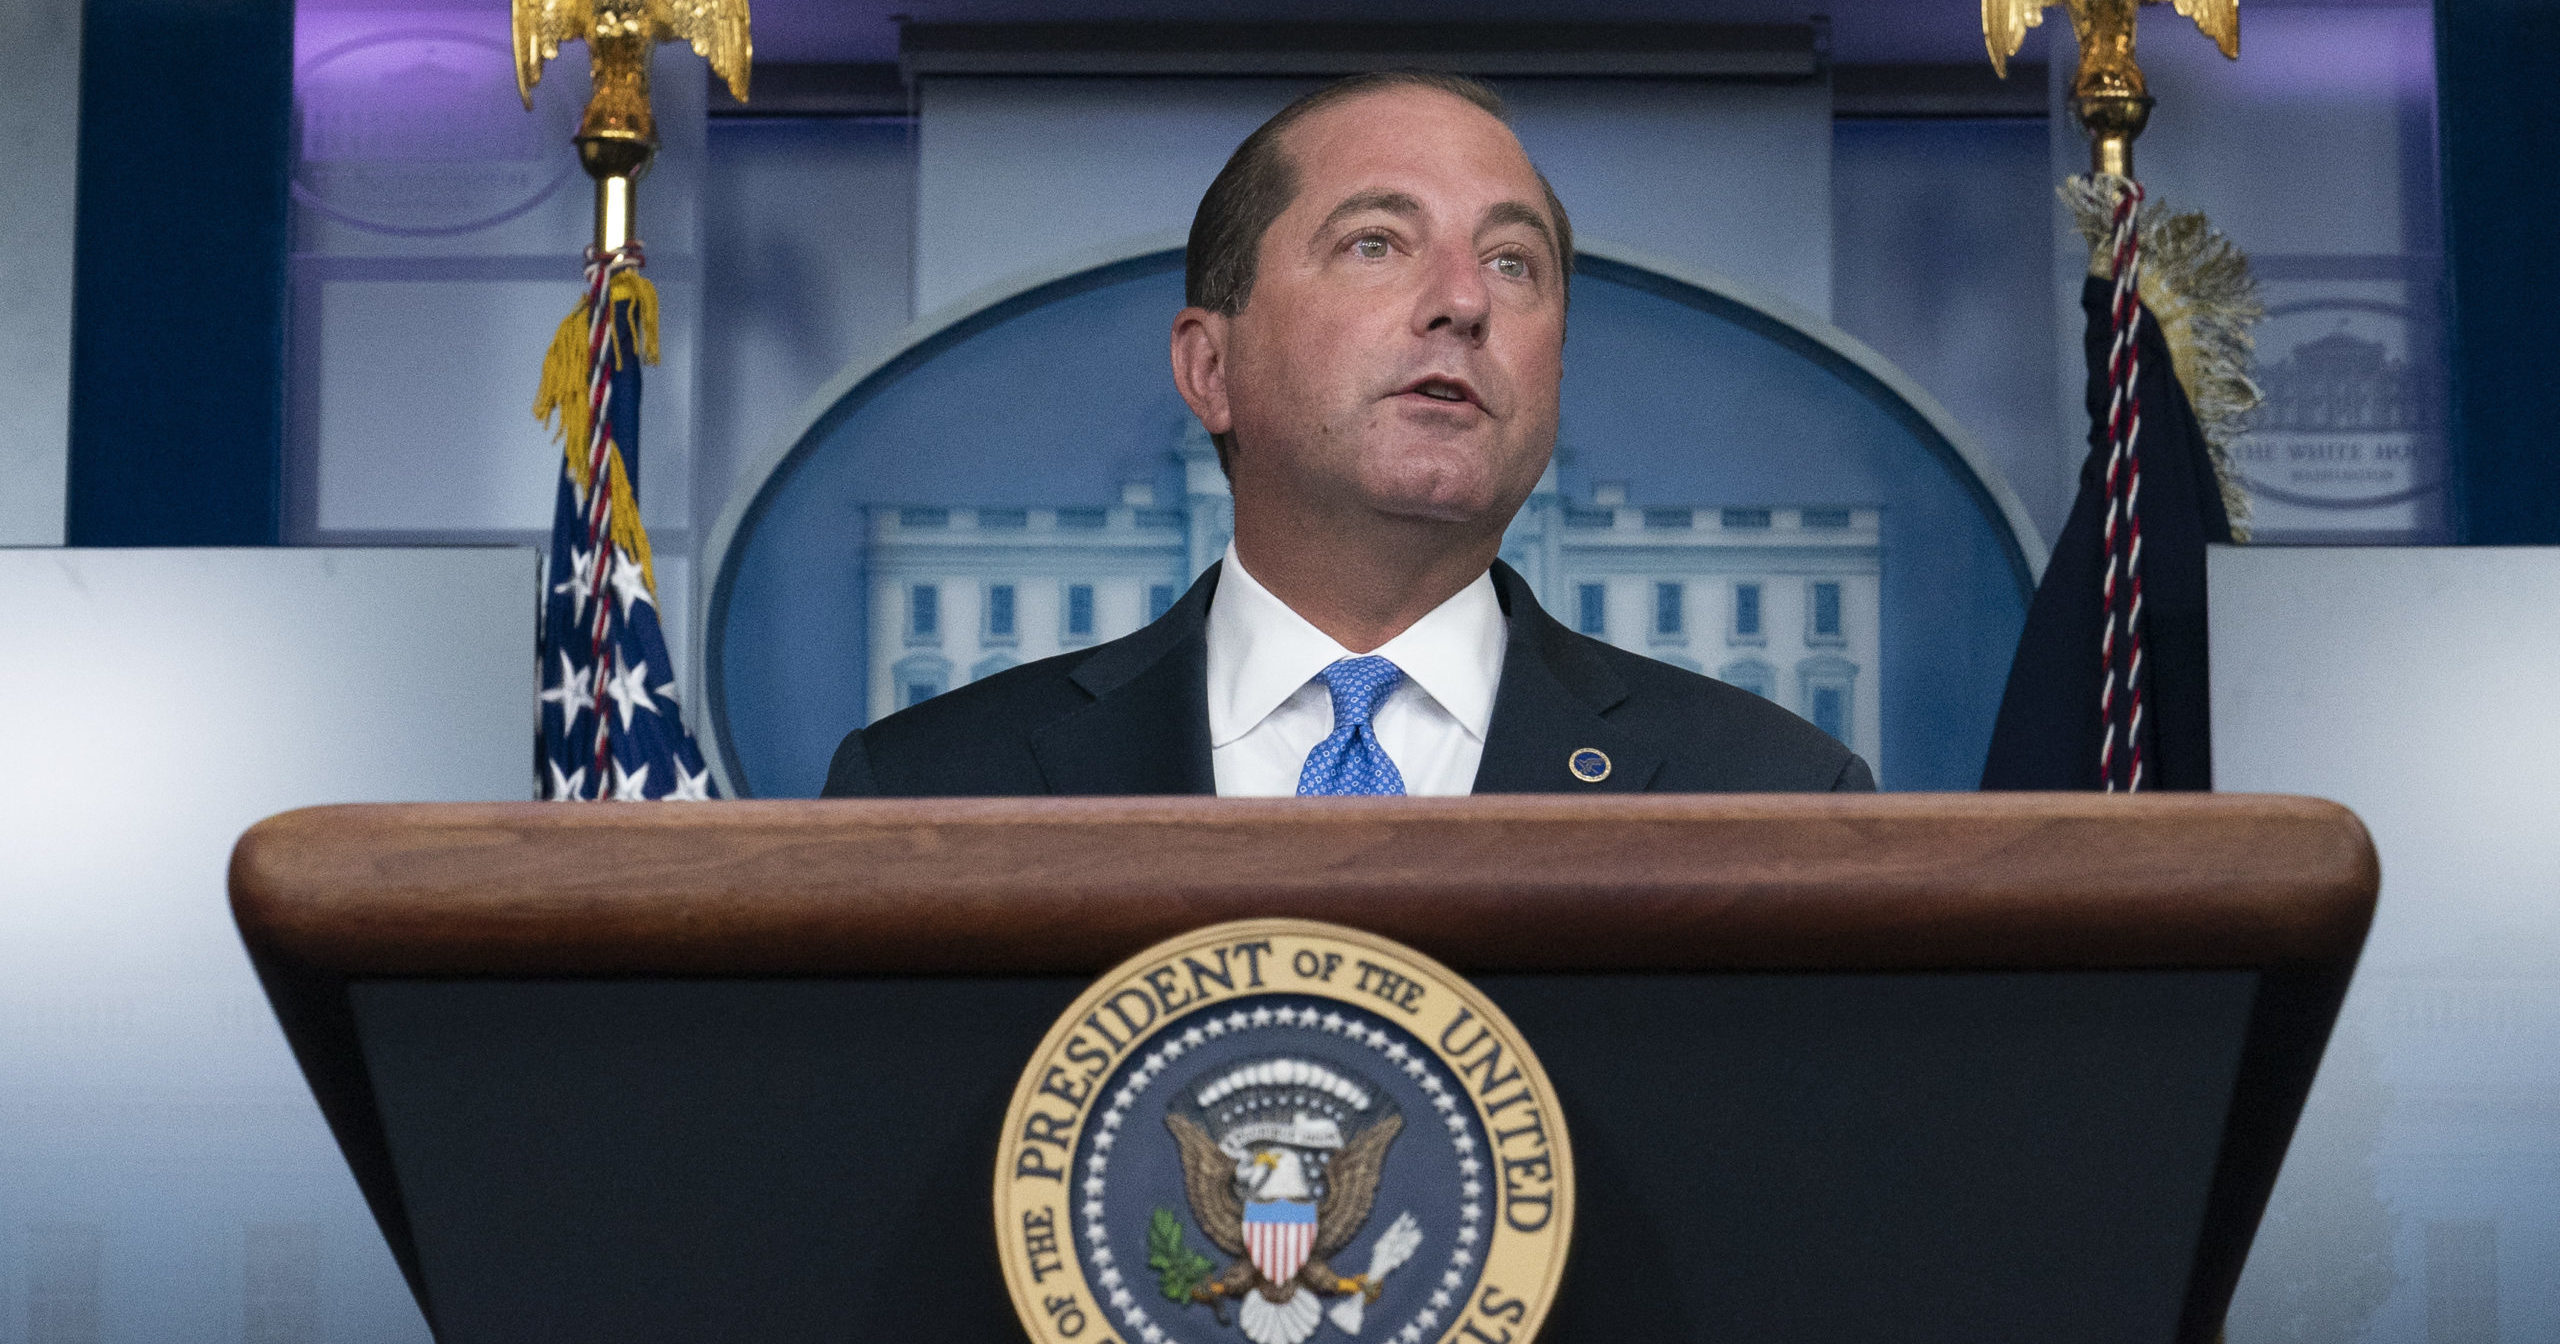 In this Aug. 23, 2020, file photo, Health and Human Services Secretary Alex Azar speaks in the White House in Washington, D.C.